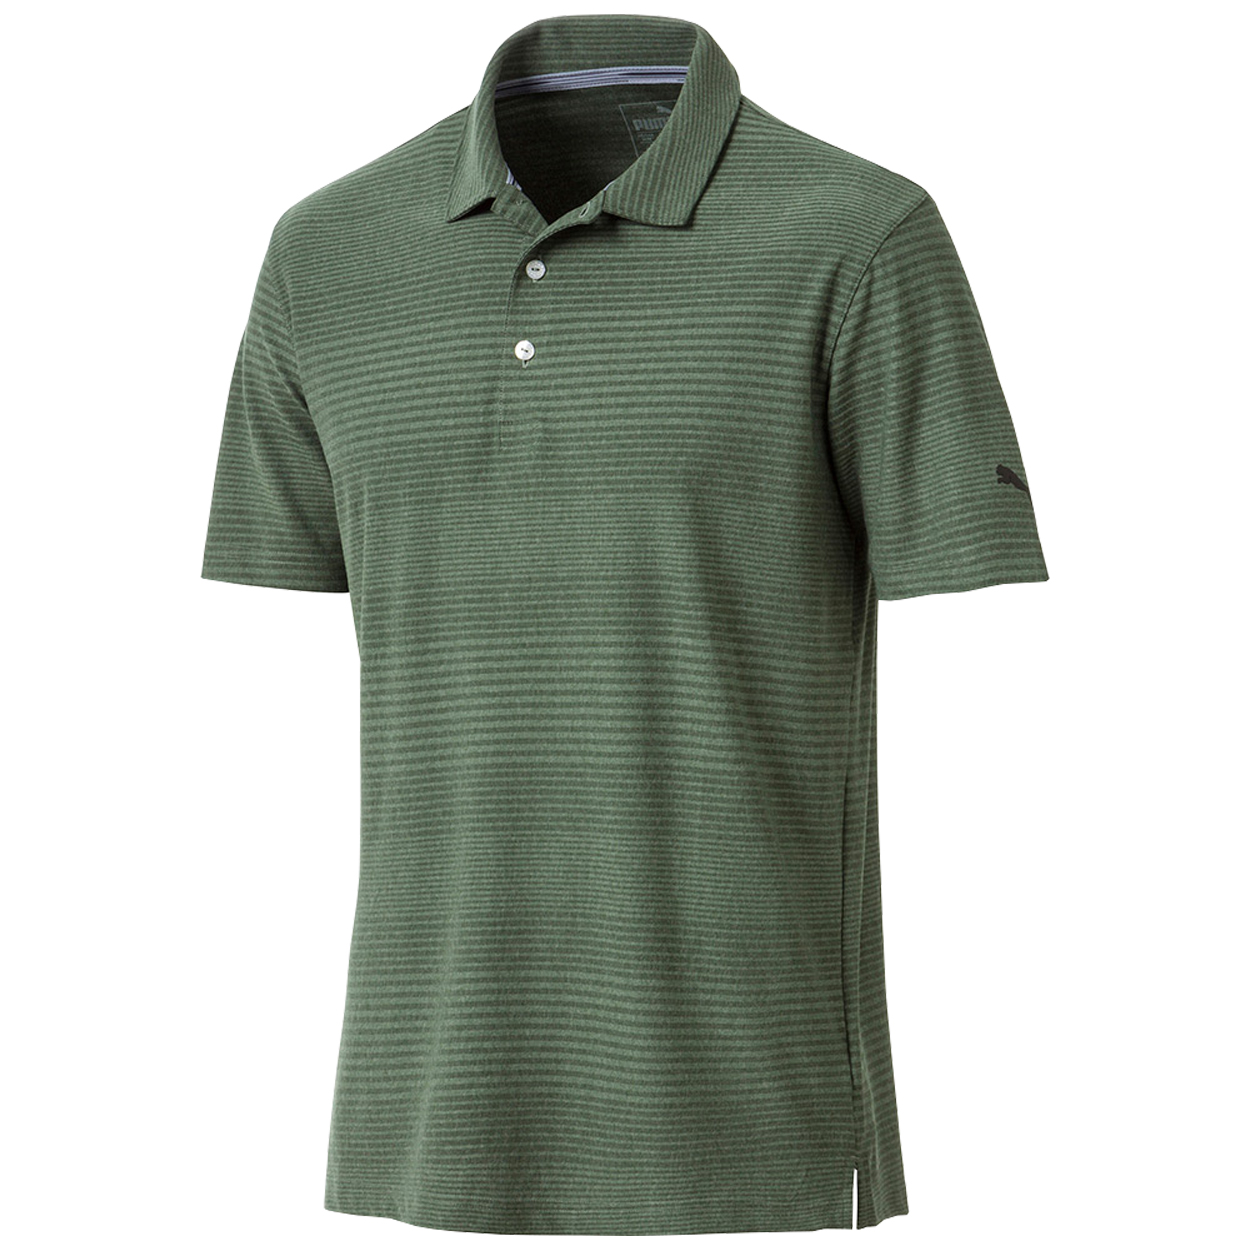 Pumapolo 1215 wreath front 1118